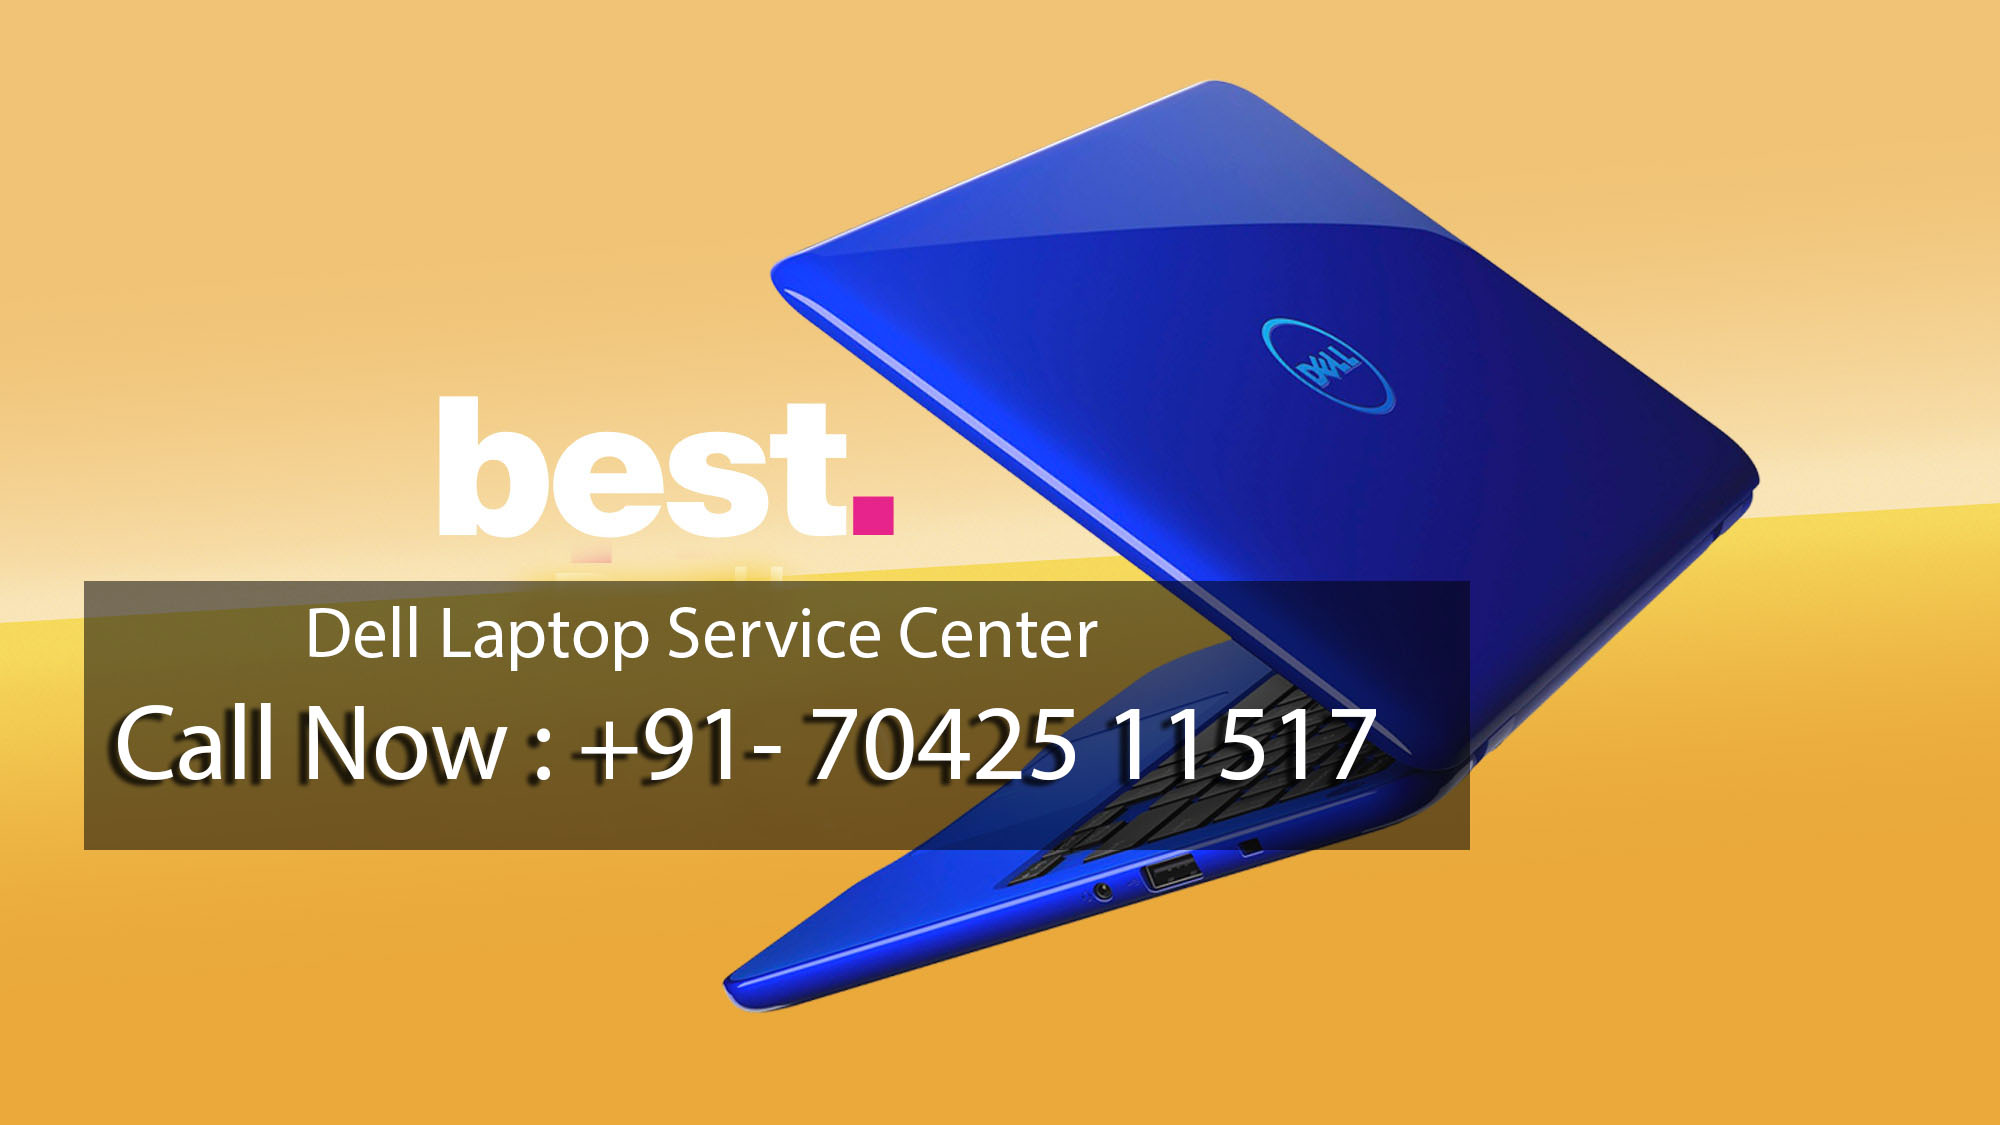 Dell Service Center in Lajpat Nagar 2